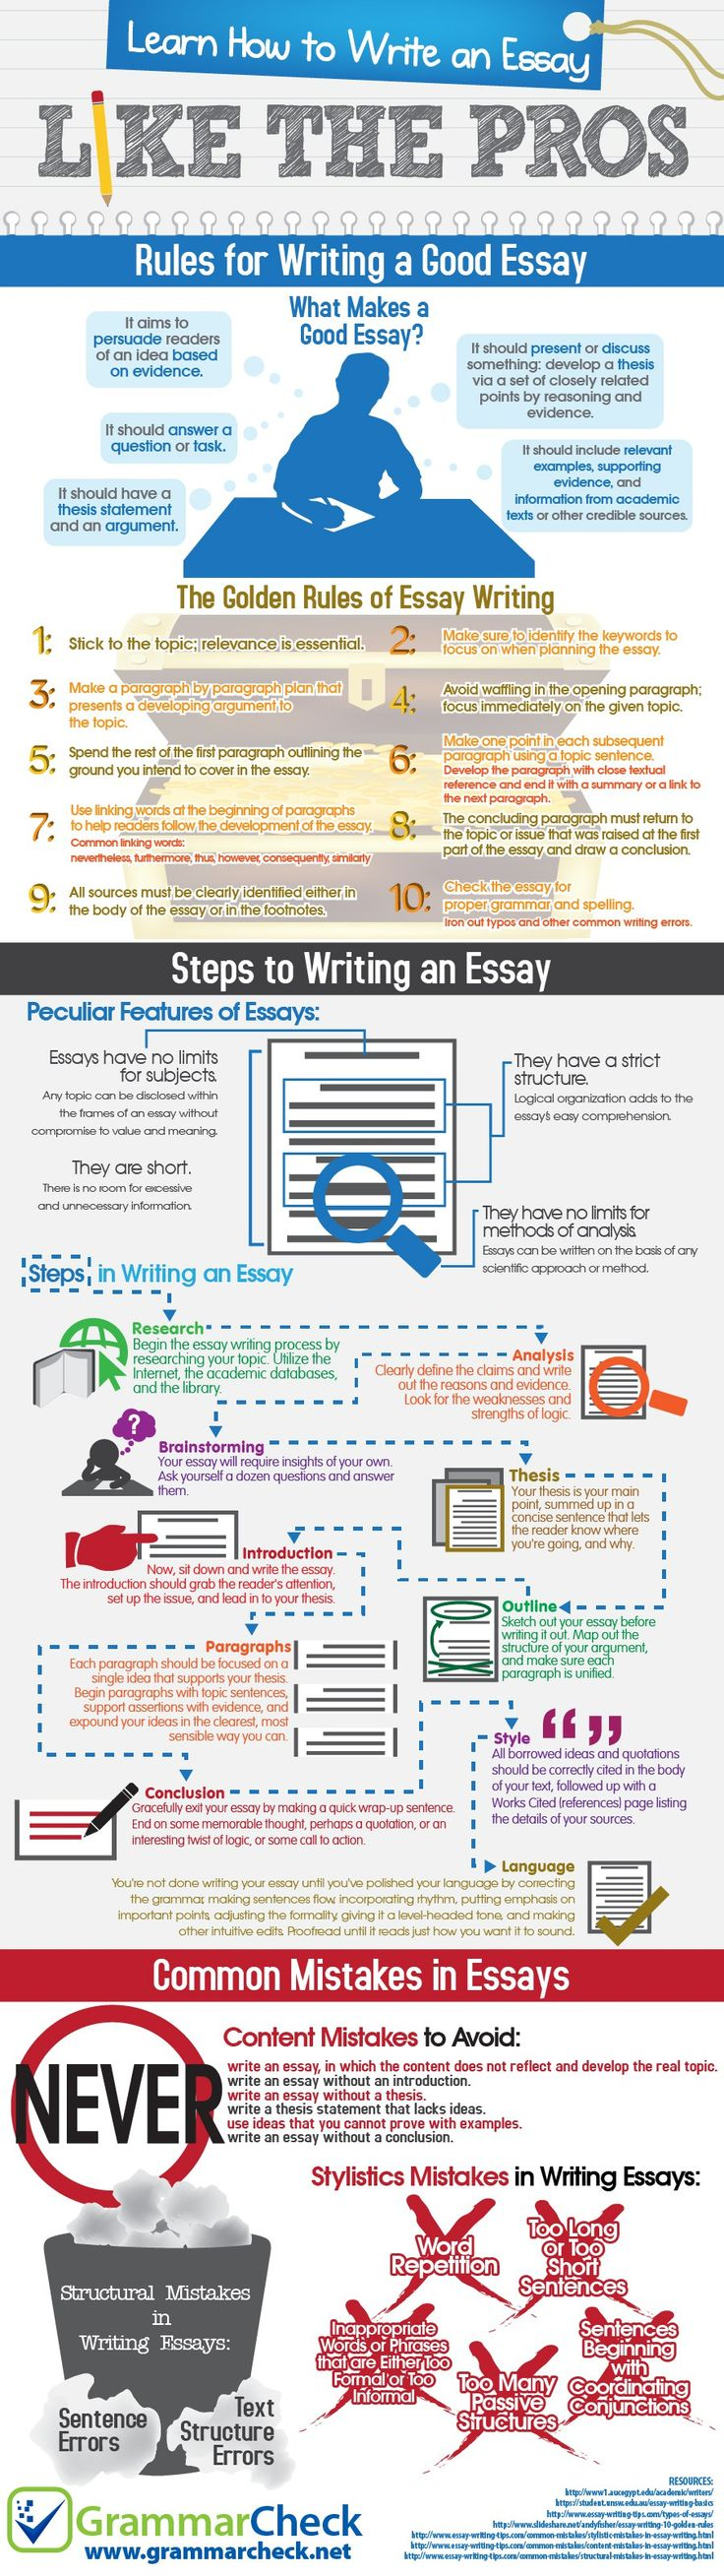 How to Write an Essay Like the Pros (Infographic)